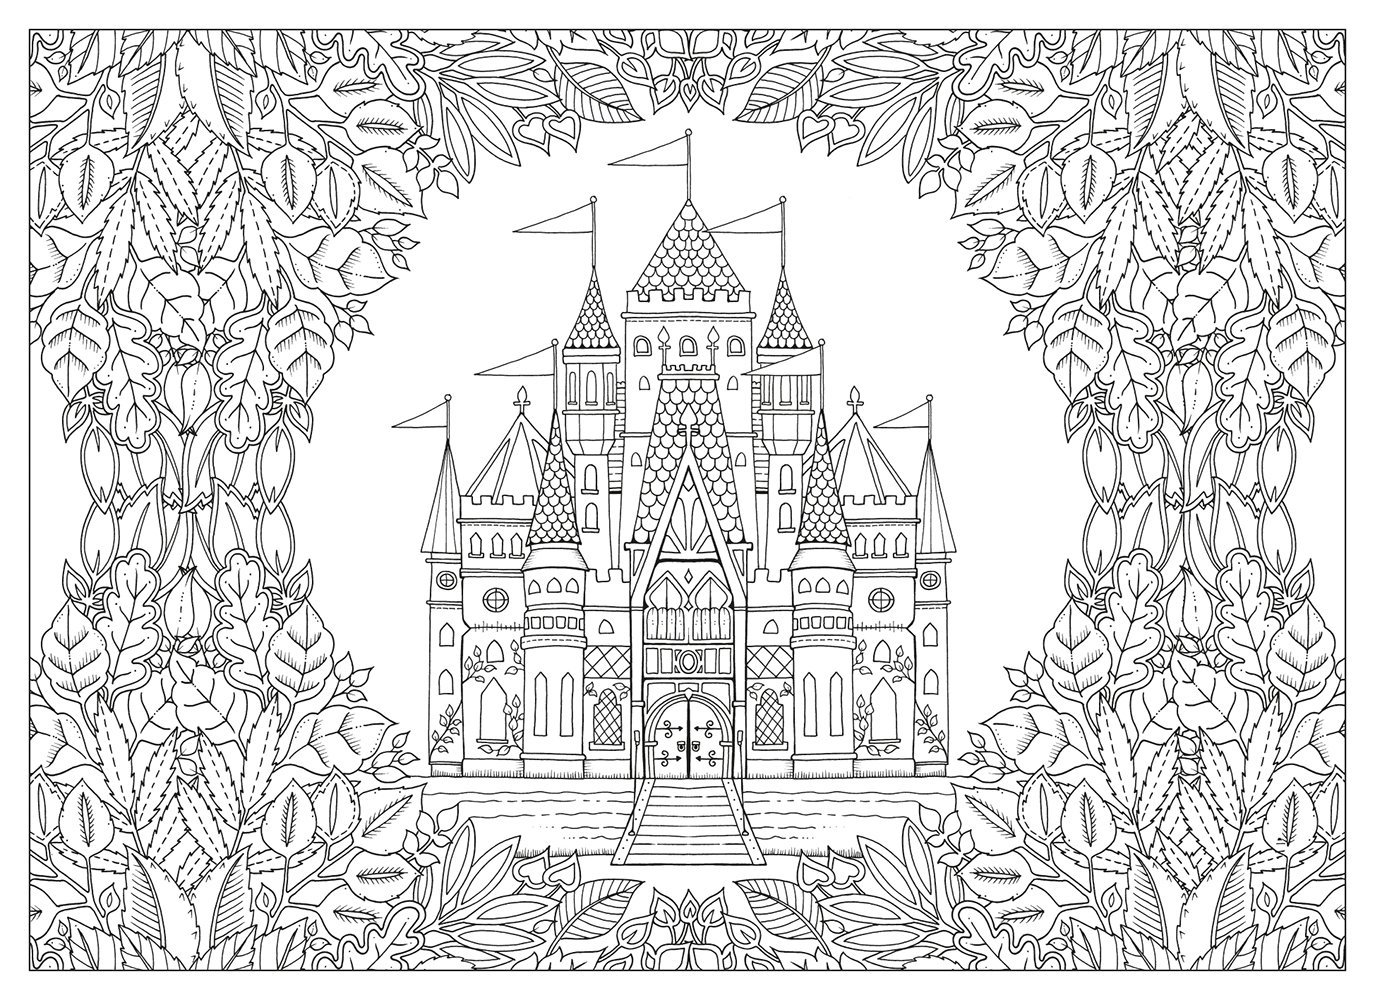 The enchanted forest coloring book uk - The Enchanted Forest Coloring Book Uk